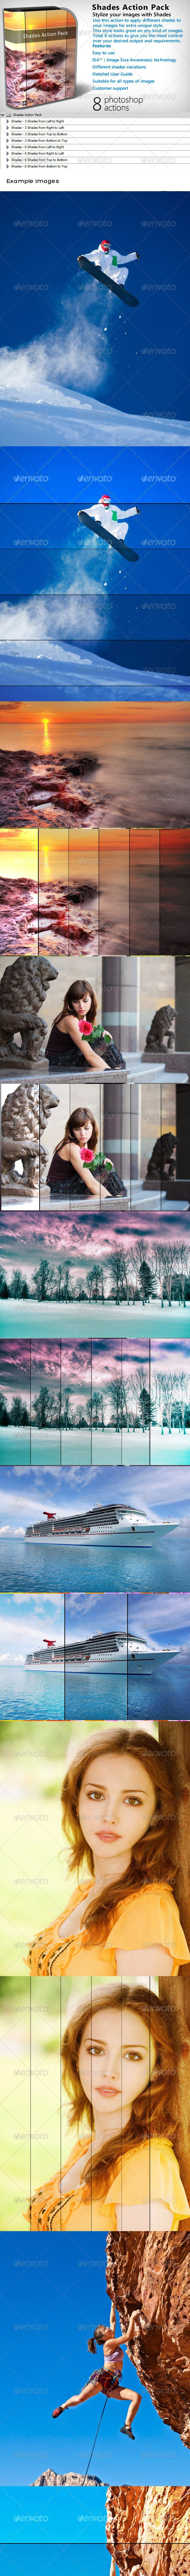 Shades Action Pack - Photo Effects Actions